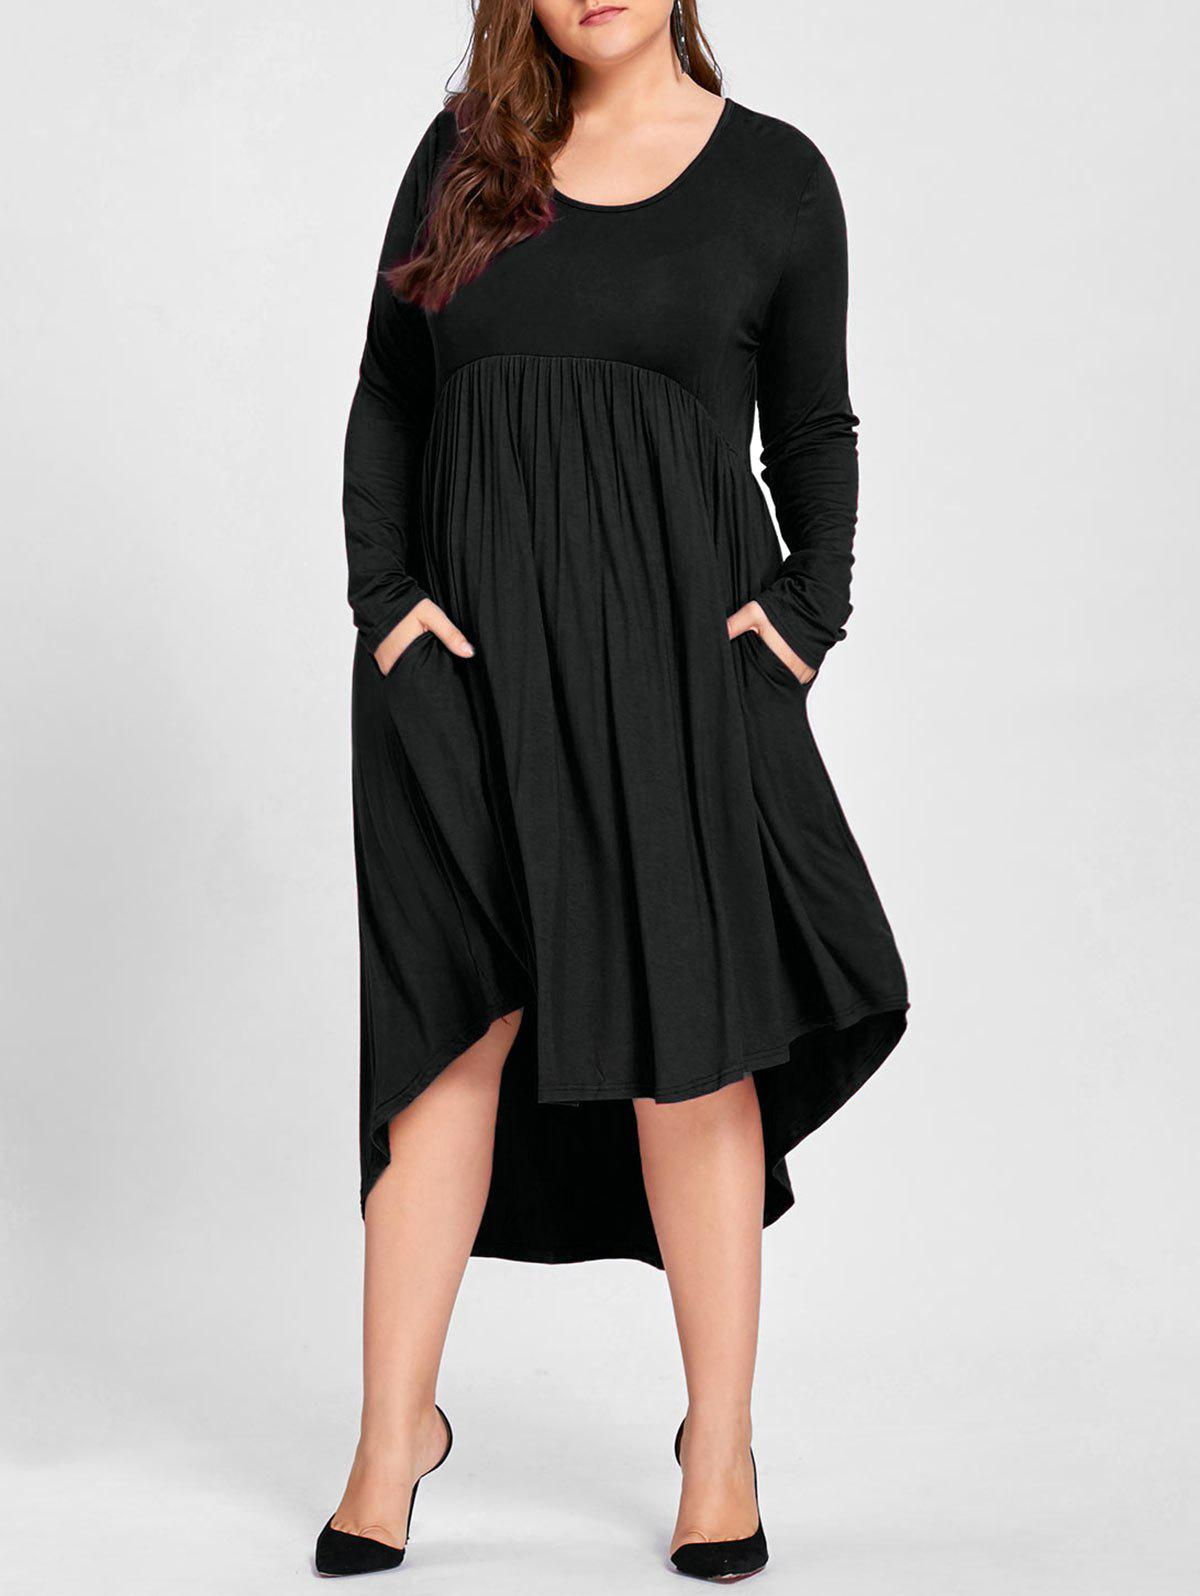 Plus Size Empire Waist High Low T Shirt DressWOMEN<br><br>Size: 4XL; Color: BLACK; Style: Casual; Material: Cotton,Polyester; Silhouette: Asymmetrical; Dresses Length: Mid-Calf; Neckline: Round Collar; Sleeve Length: Long Sleeves; Pattern Type: Solid; With Belt: No; Season: Fall; Weight: 0.5000kg; Package Contents: 1 x Dress;